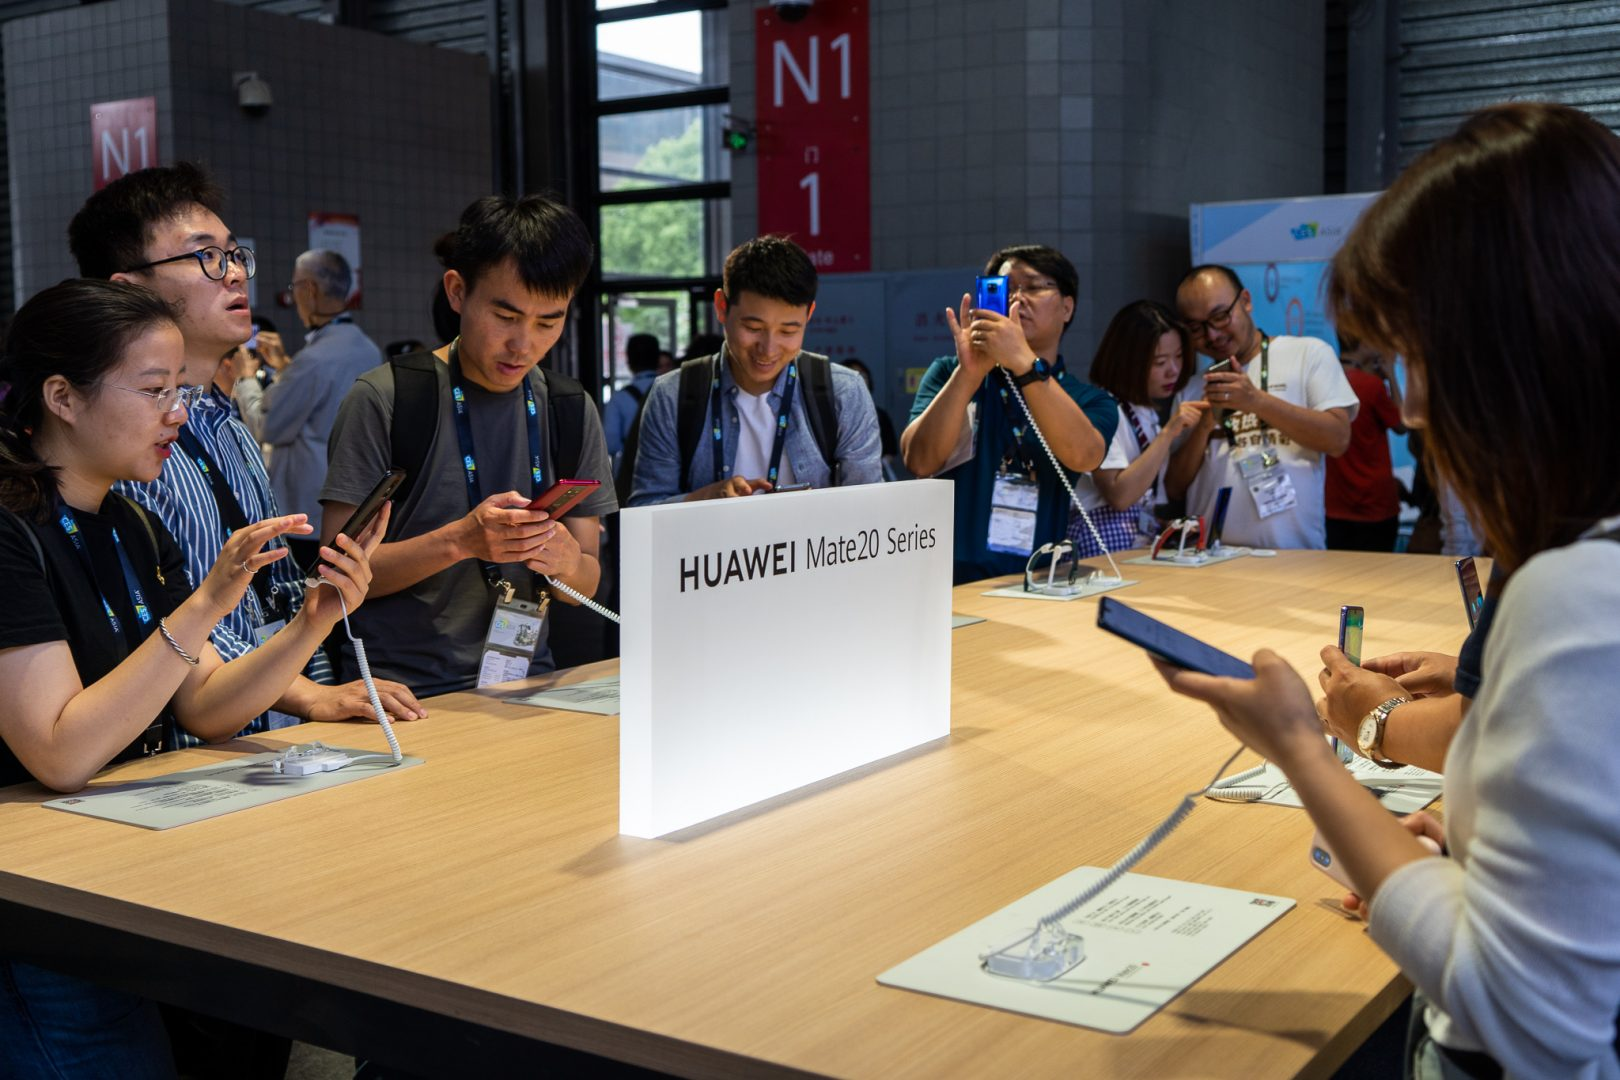 Huawei targeted for implying Taiwan is not part of China